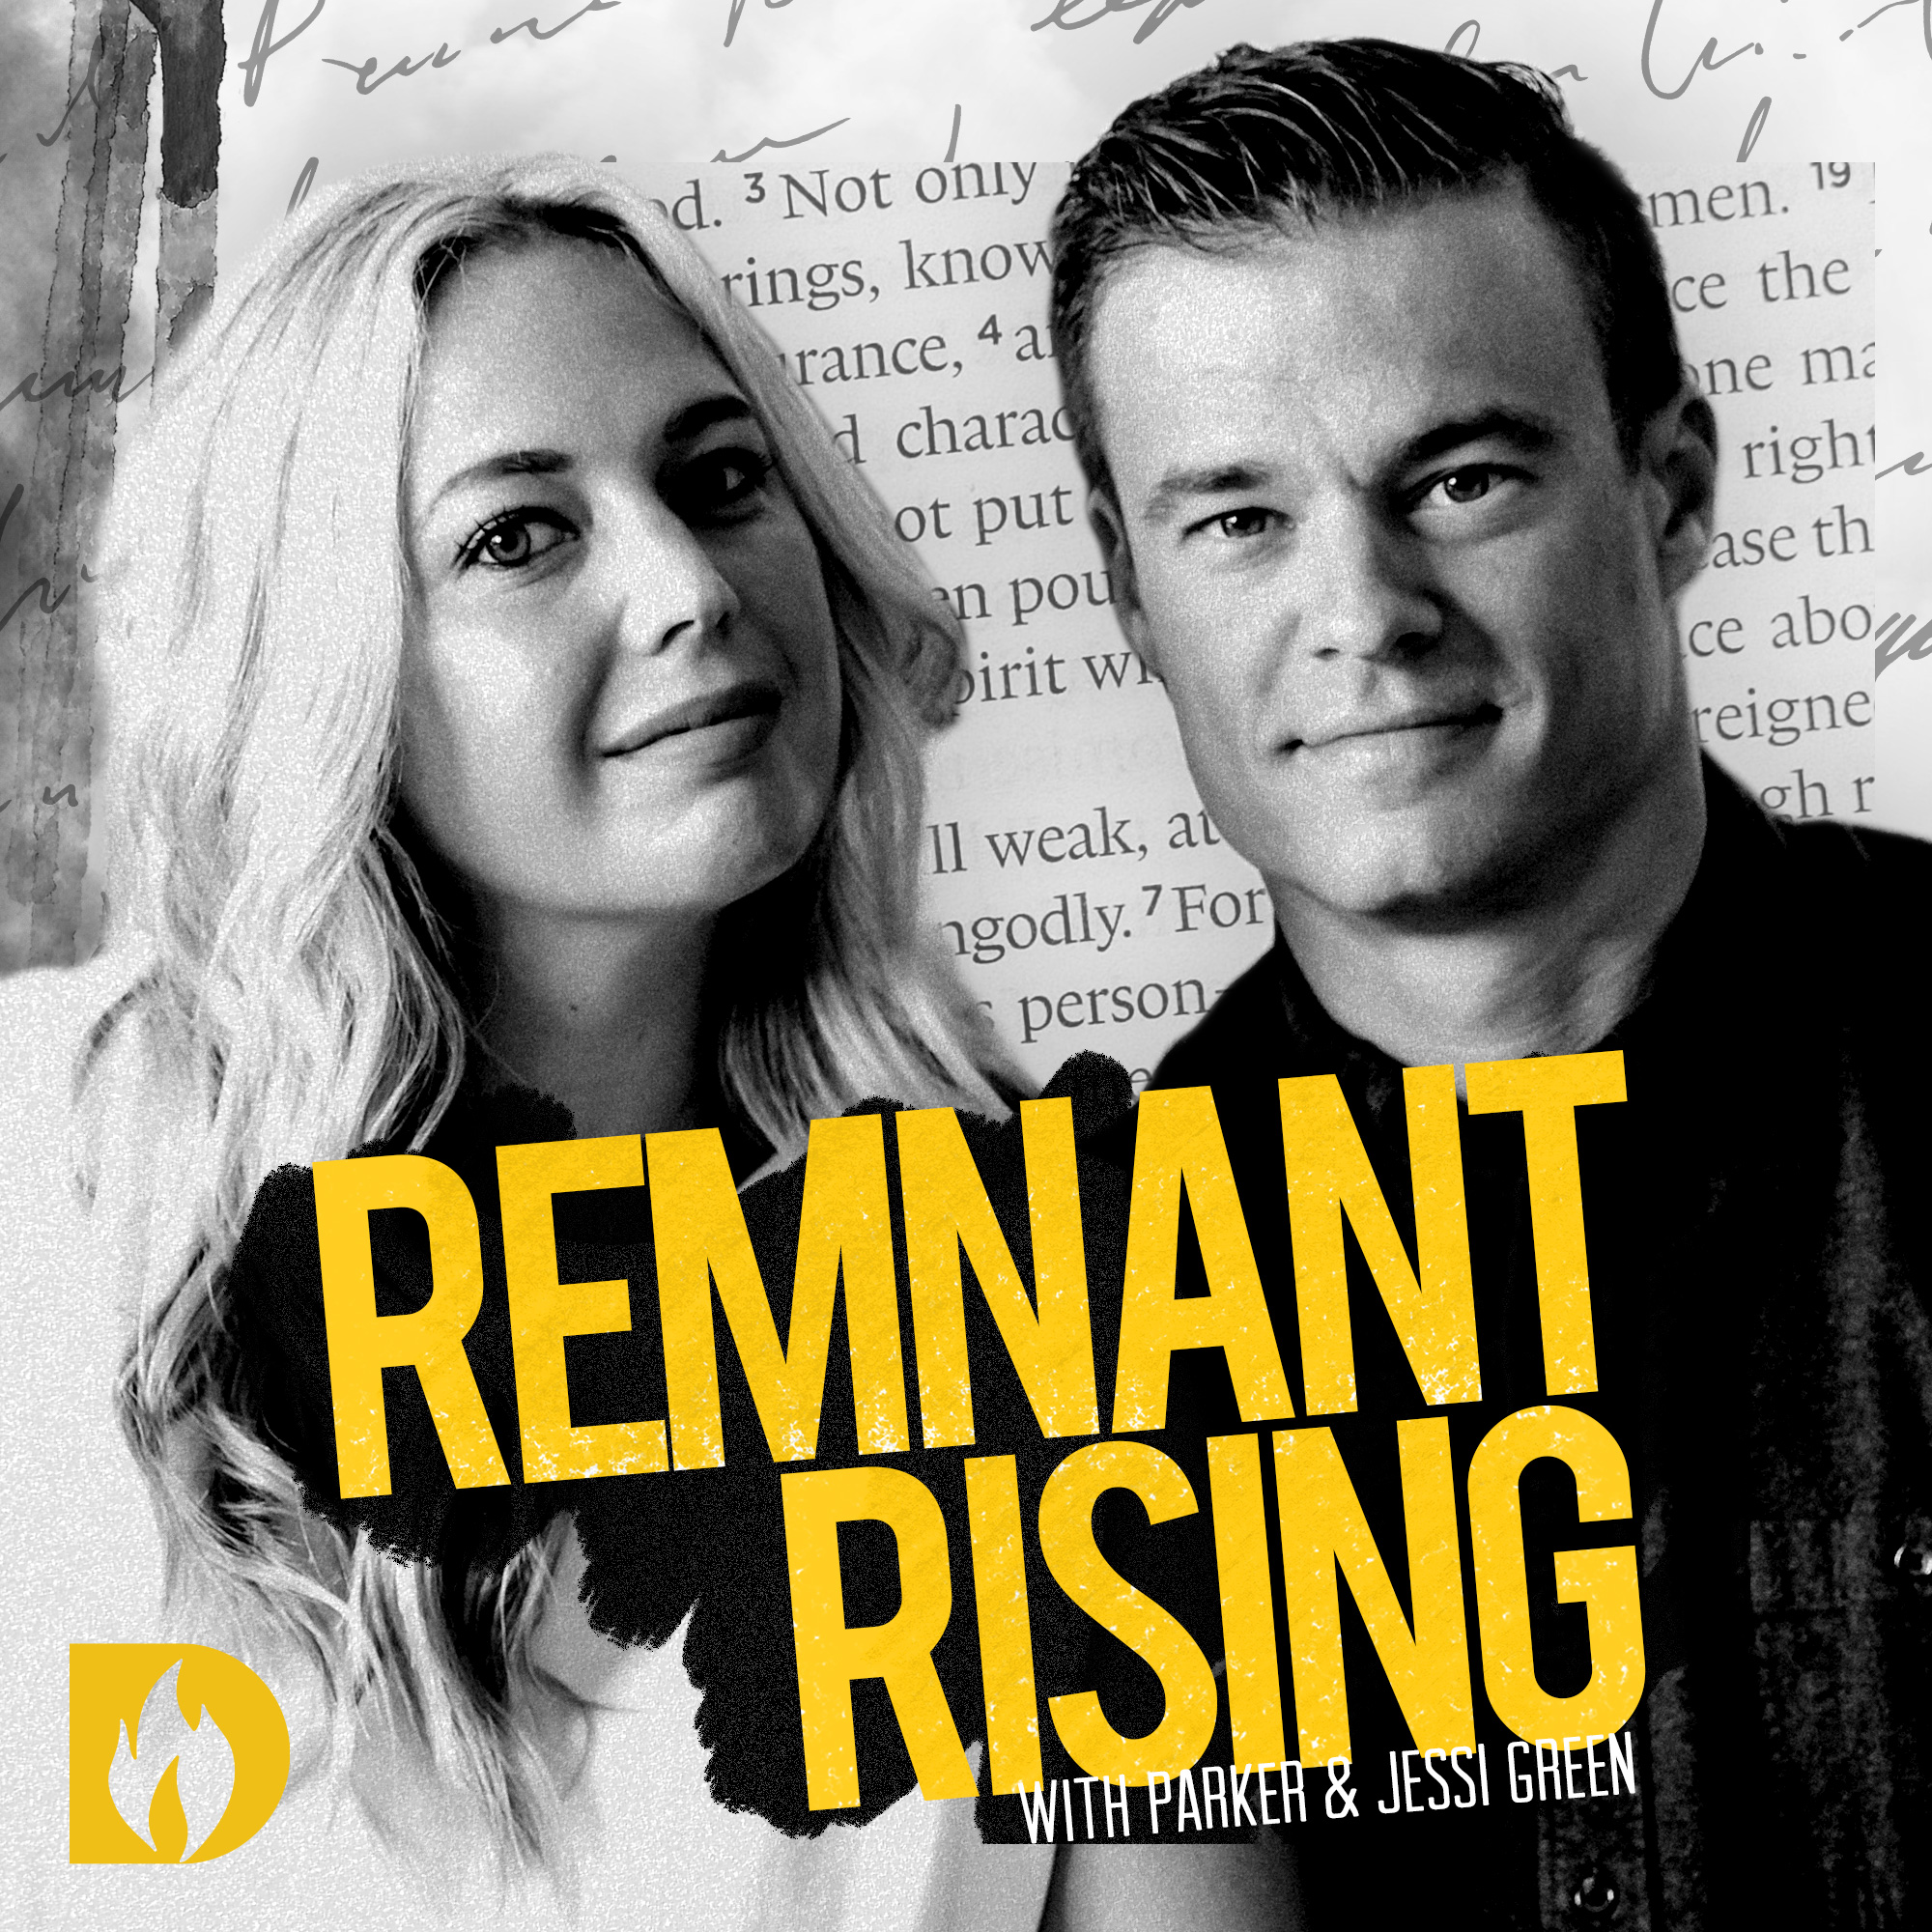 Remnant Rising with Parker and Jessi Green